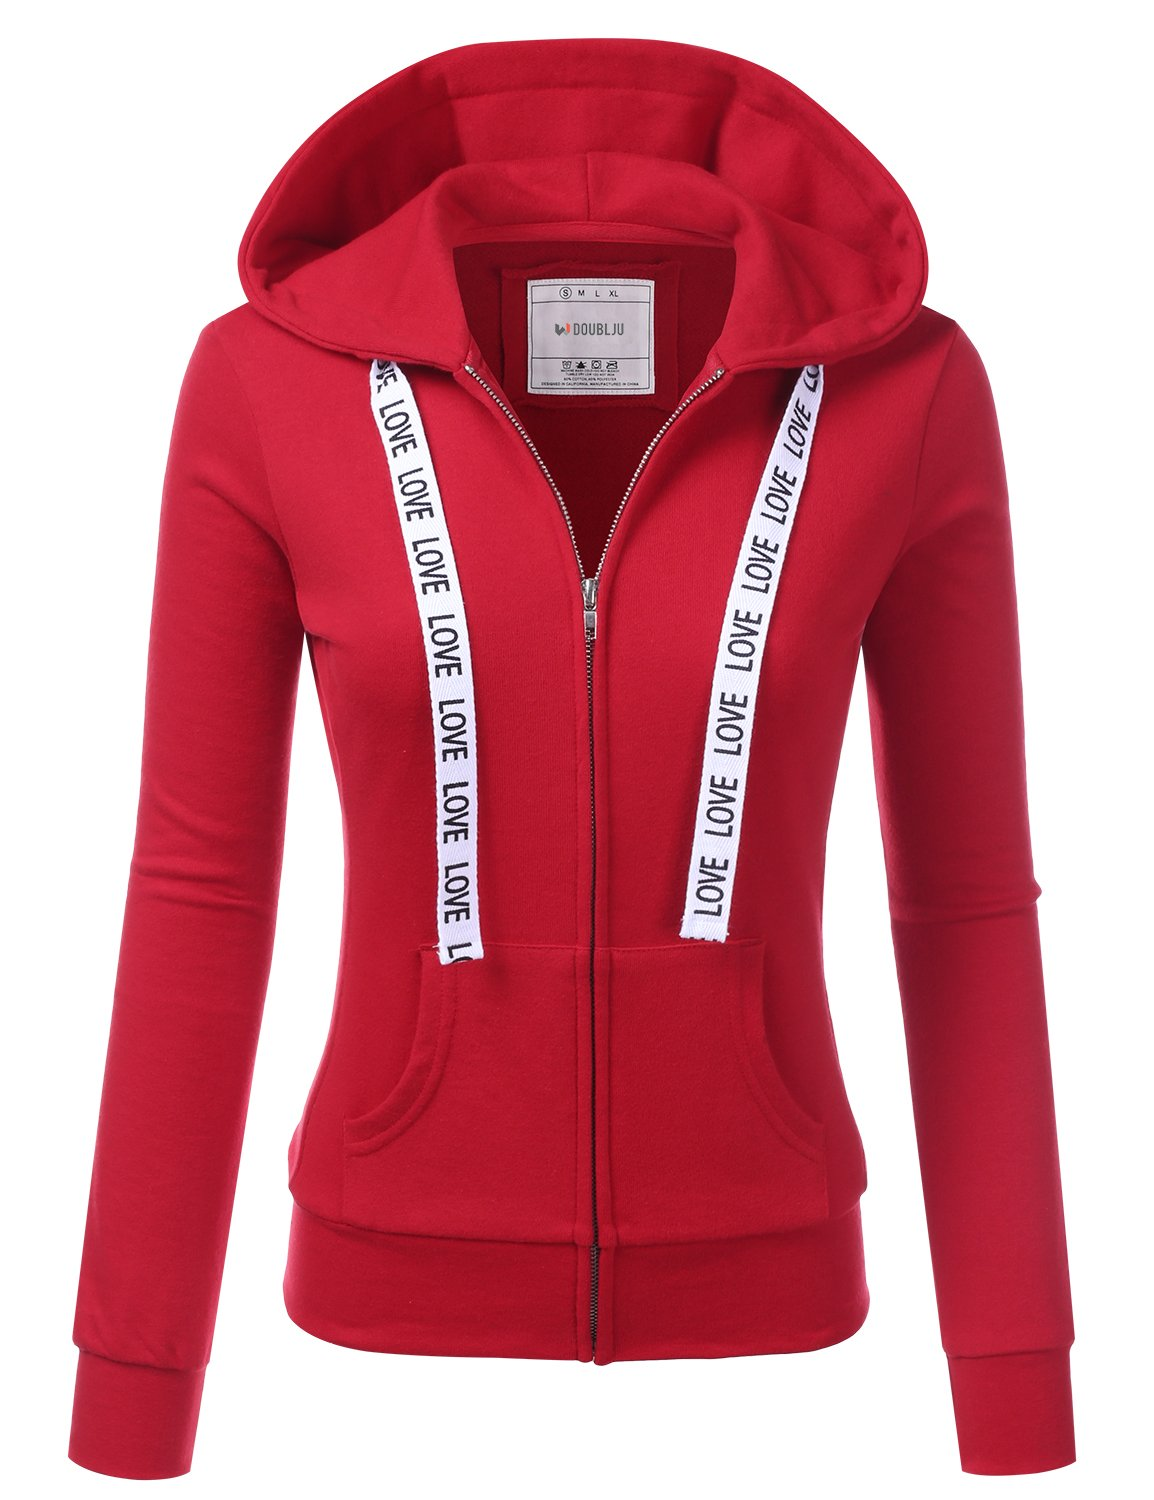 Doublju Lightweight Thin Zip-up Hoodie Jacket for Women with Plus Size RED Medium